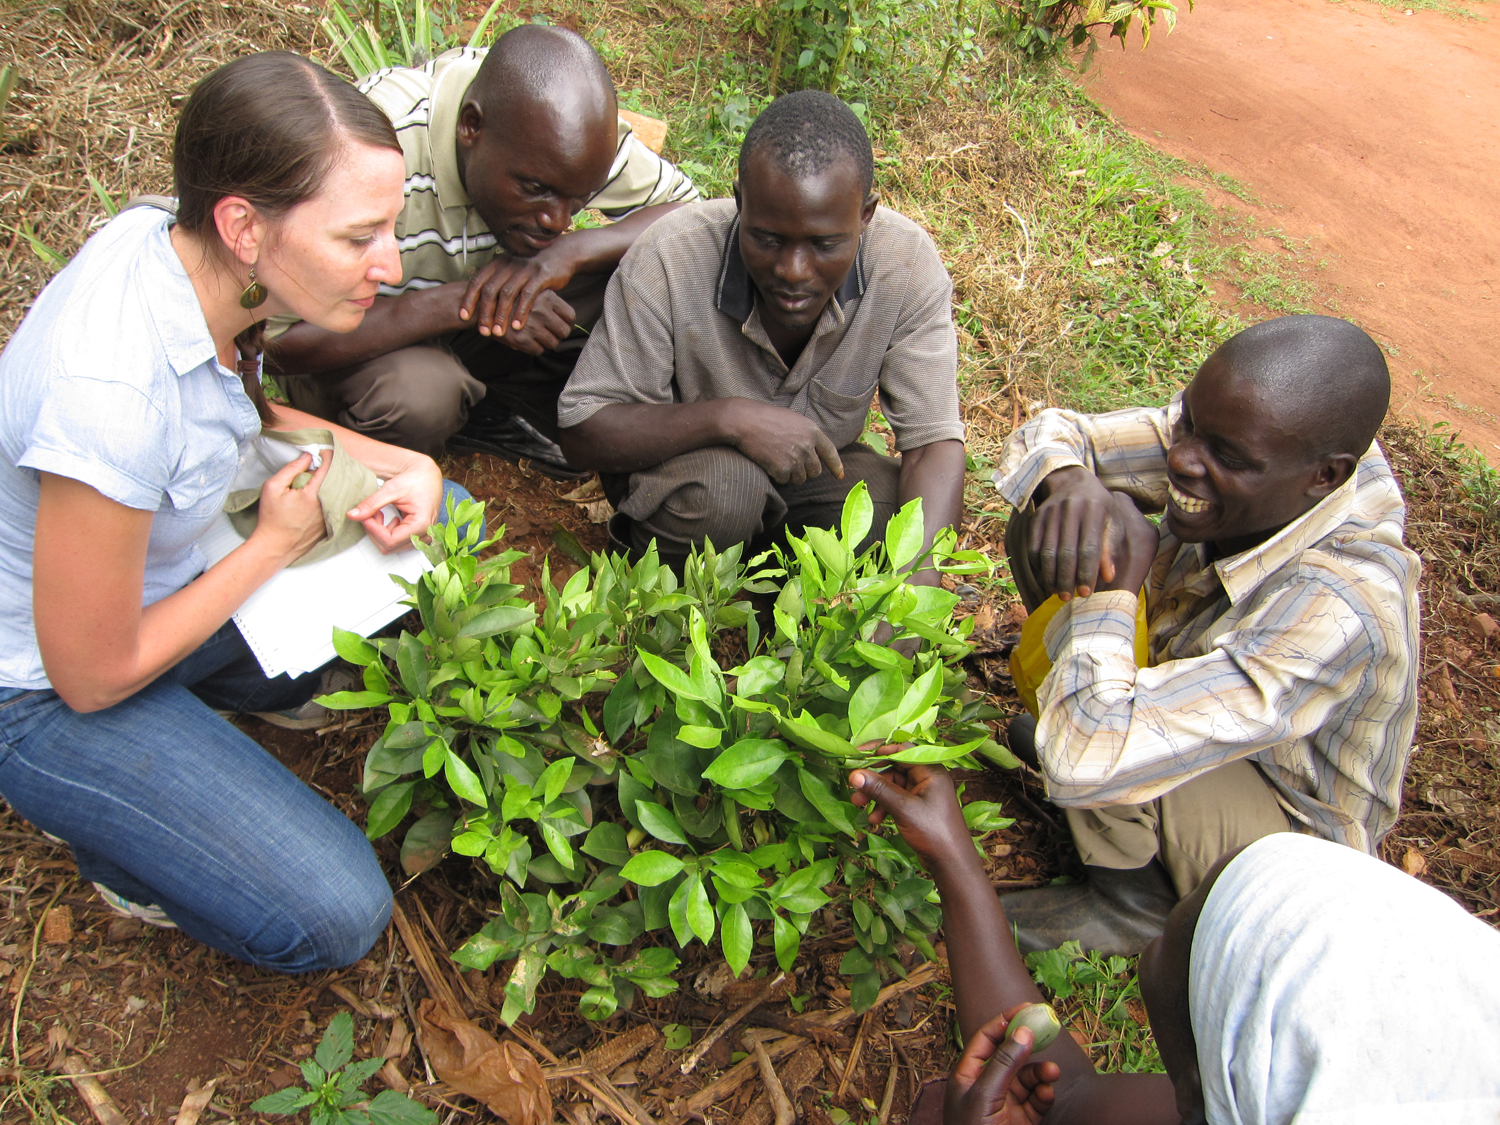 Student with notepad listens as Ugandans point out problems with a citrus tree.